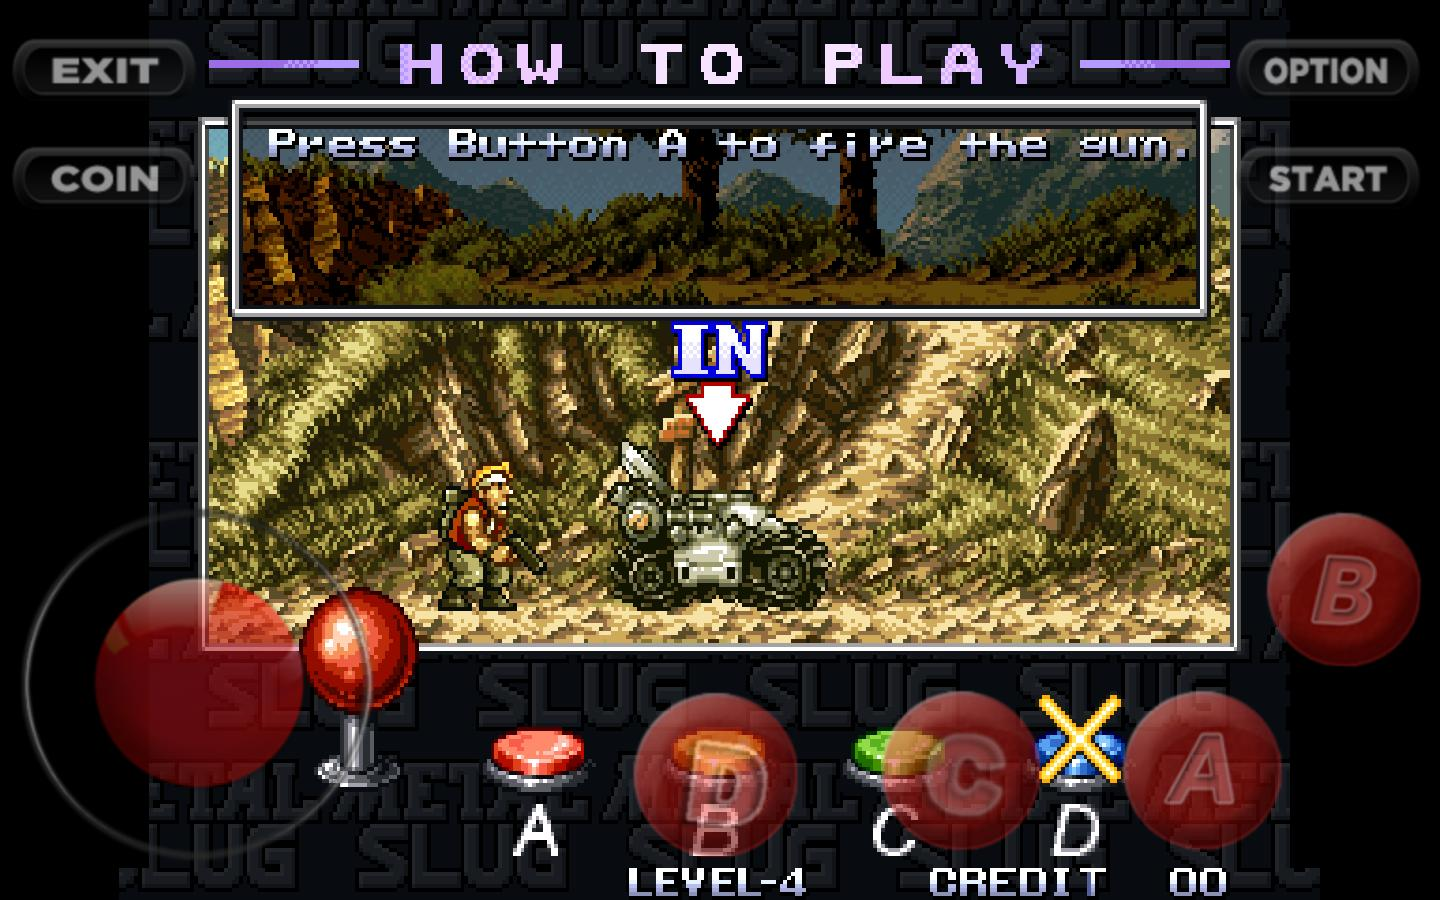 Metal slug 3 mame32 rom download | FightCade Game :: Metal Slug 3